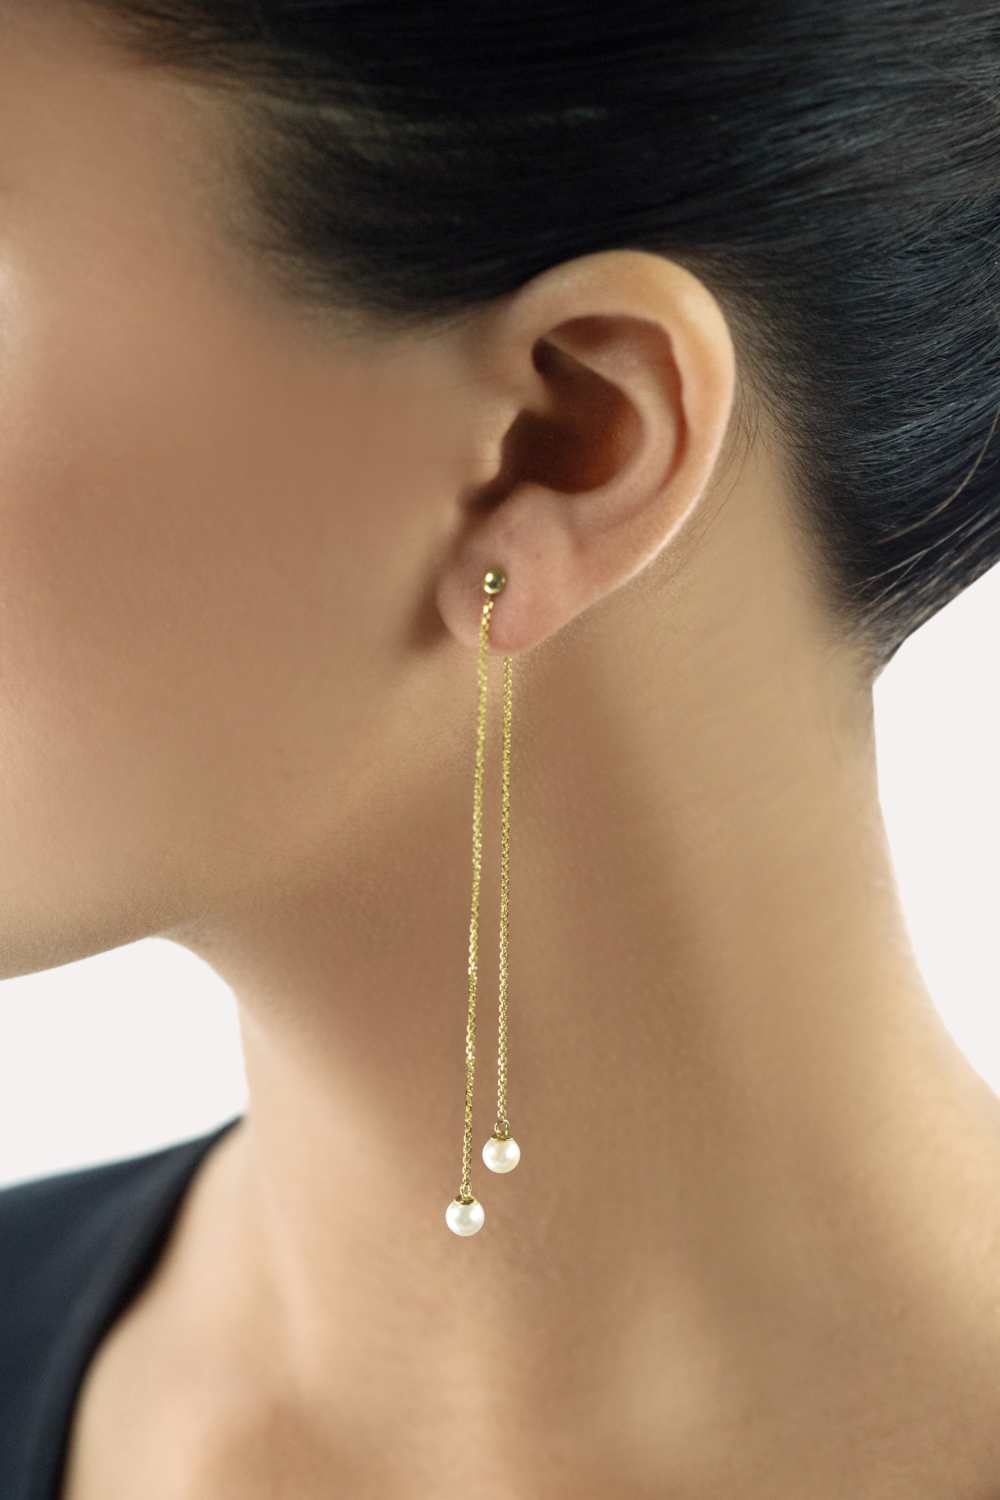 Long Dangling Pearl Earrings - $700 CAd